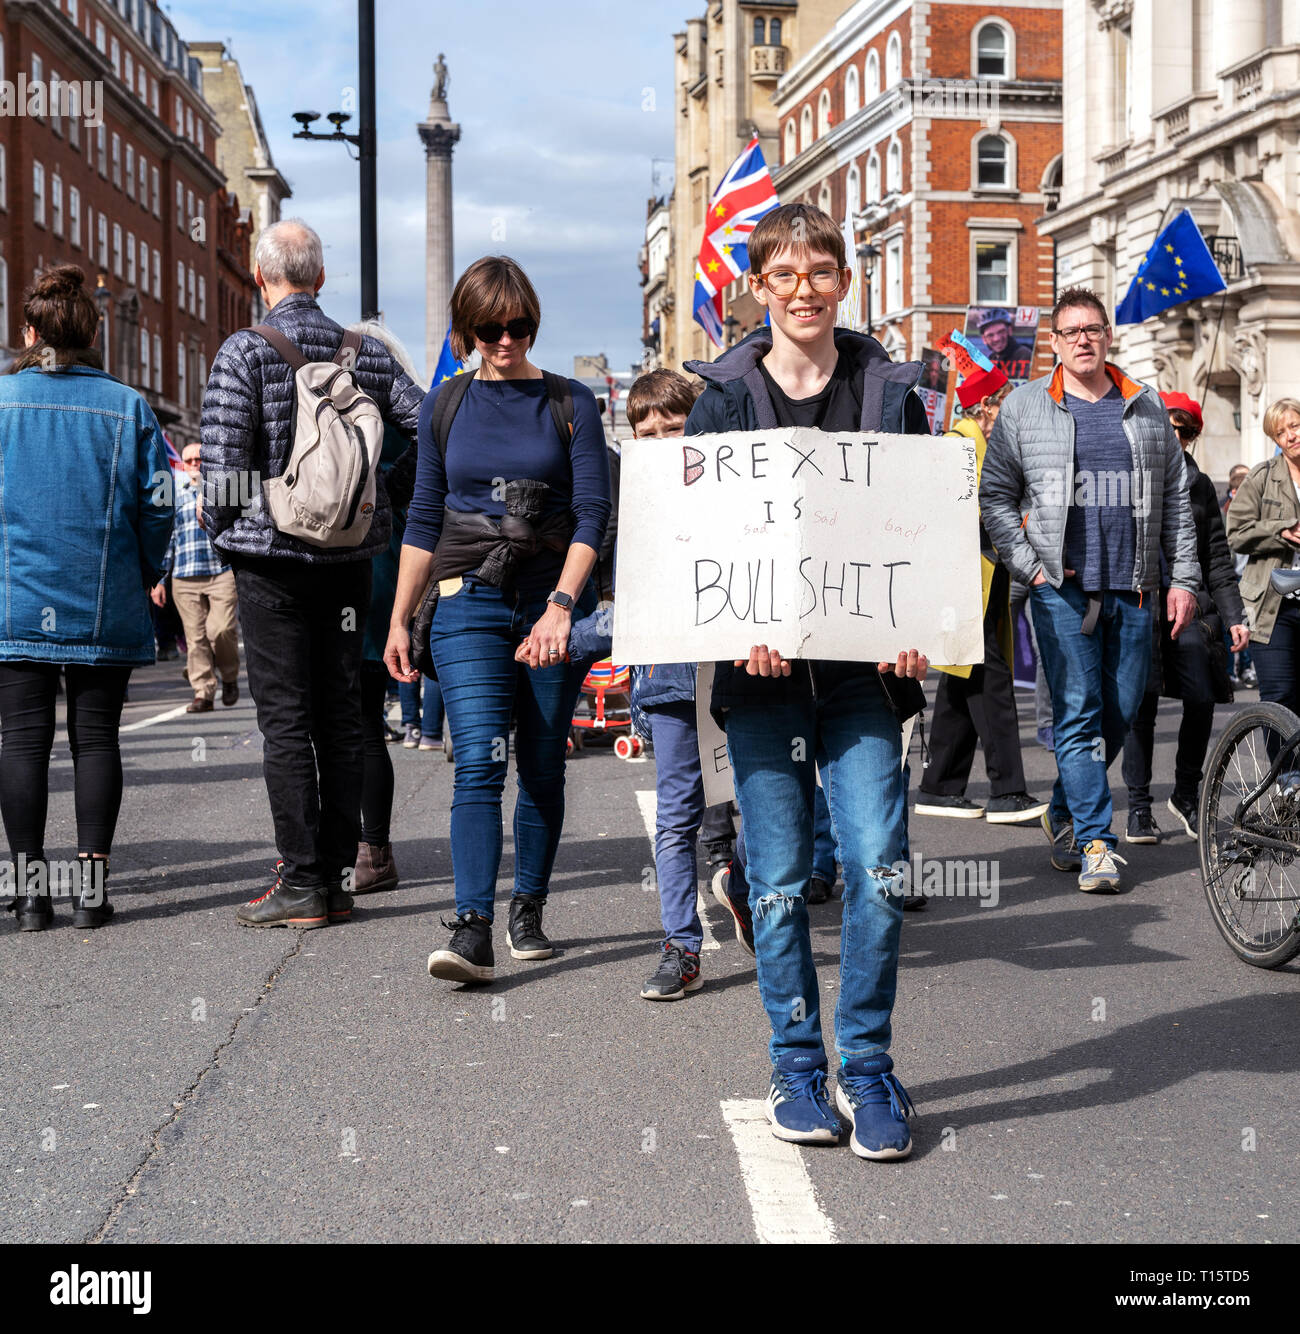 """London, UK. 23rd Mar 2019. A Young protestor holds the banner """"Brexit is Bullshit"""" during the People's Vote march in London. Credit: AndKa/Alamy Live News Stock Photo"""